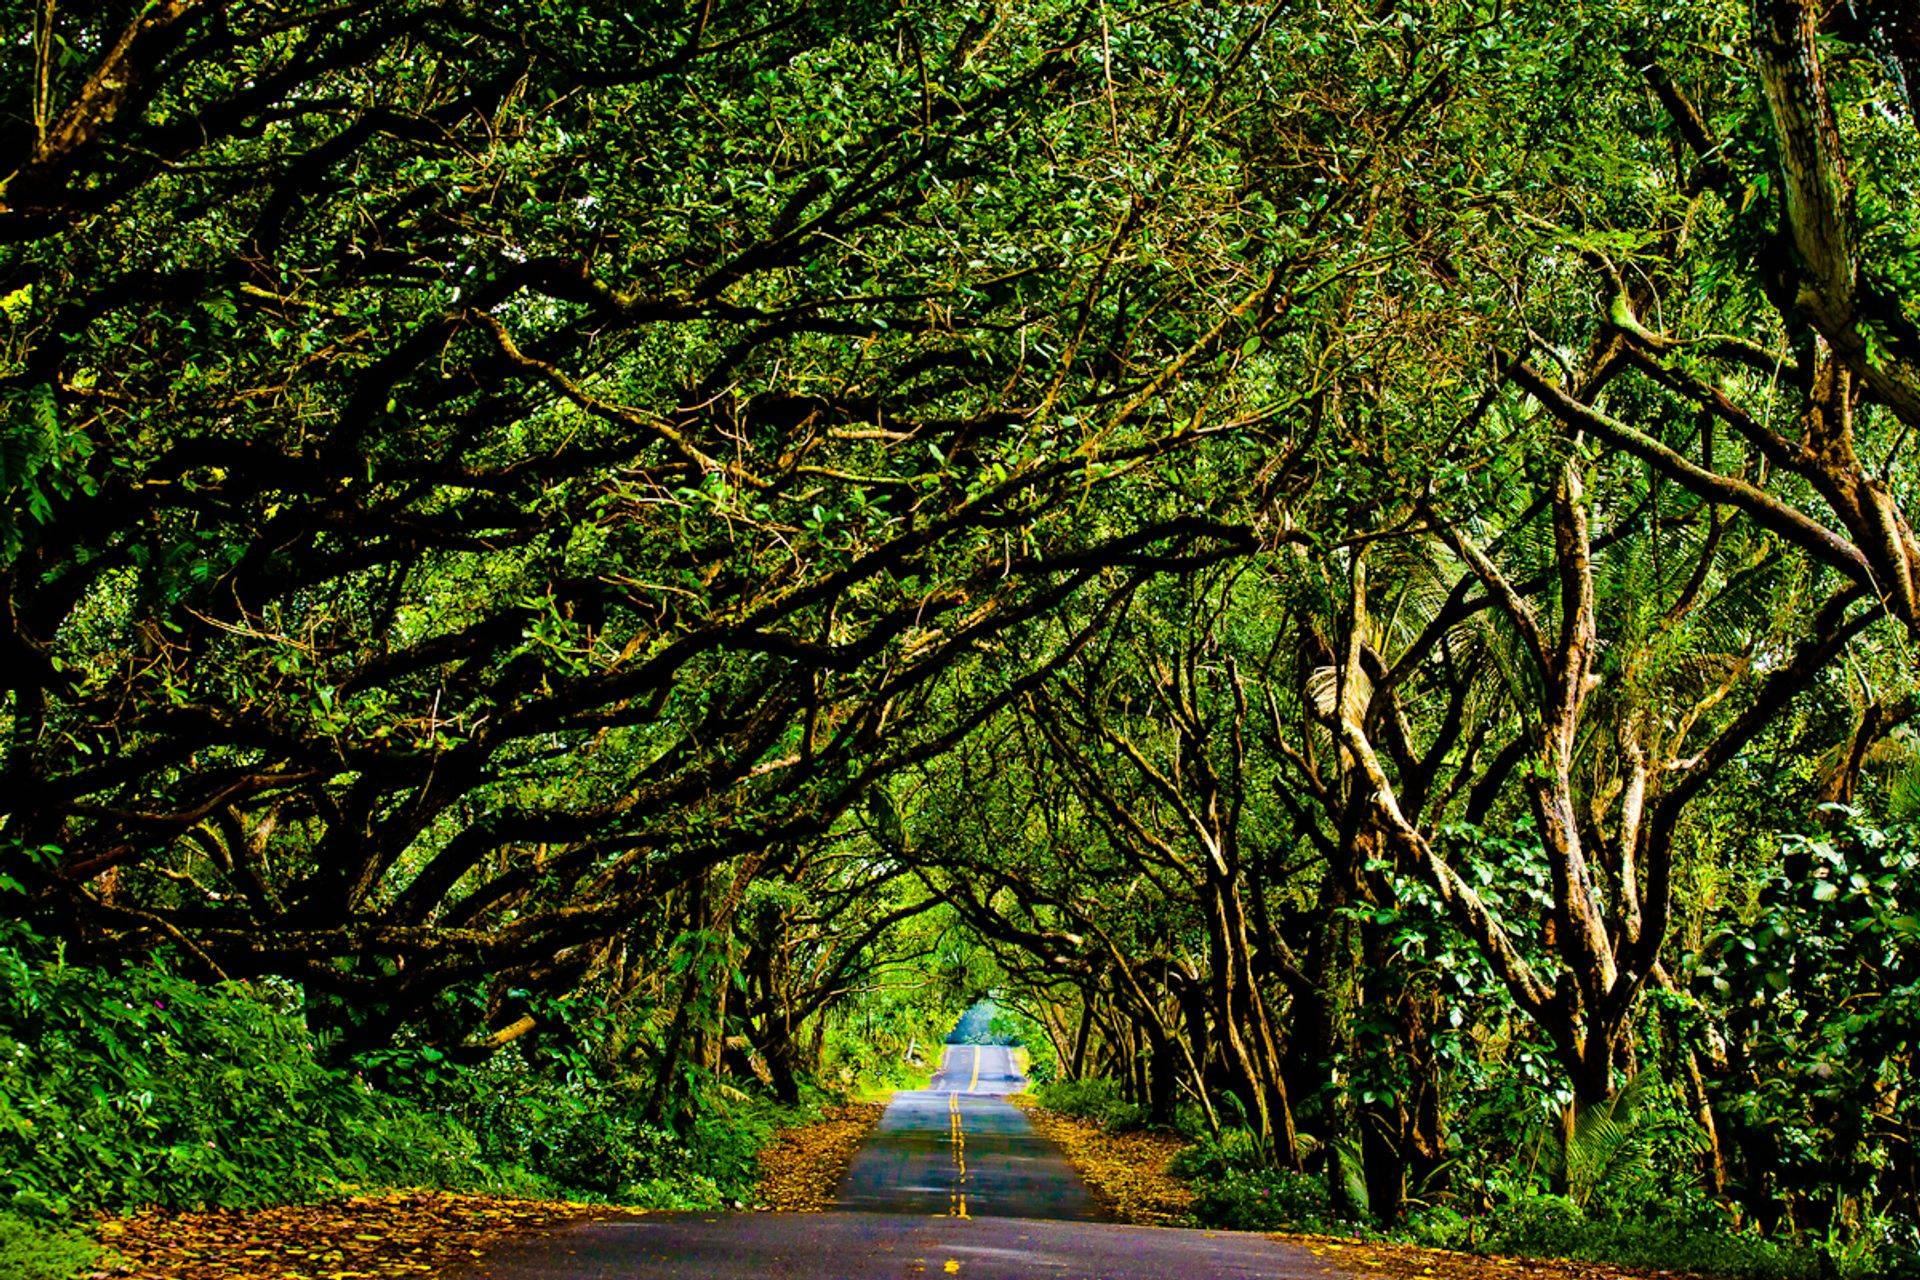 Tropical Tree tunnel on the Red Road in front of the Bali House & Cottage